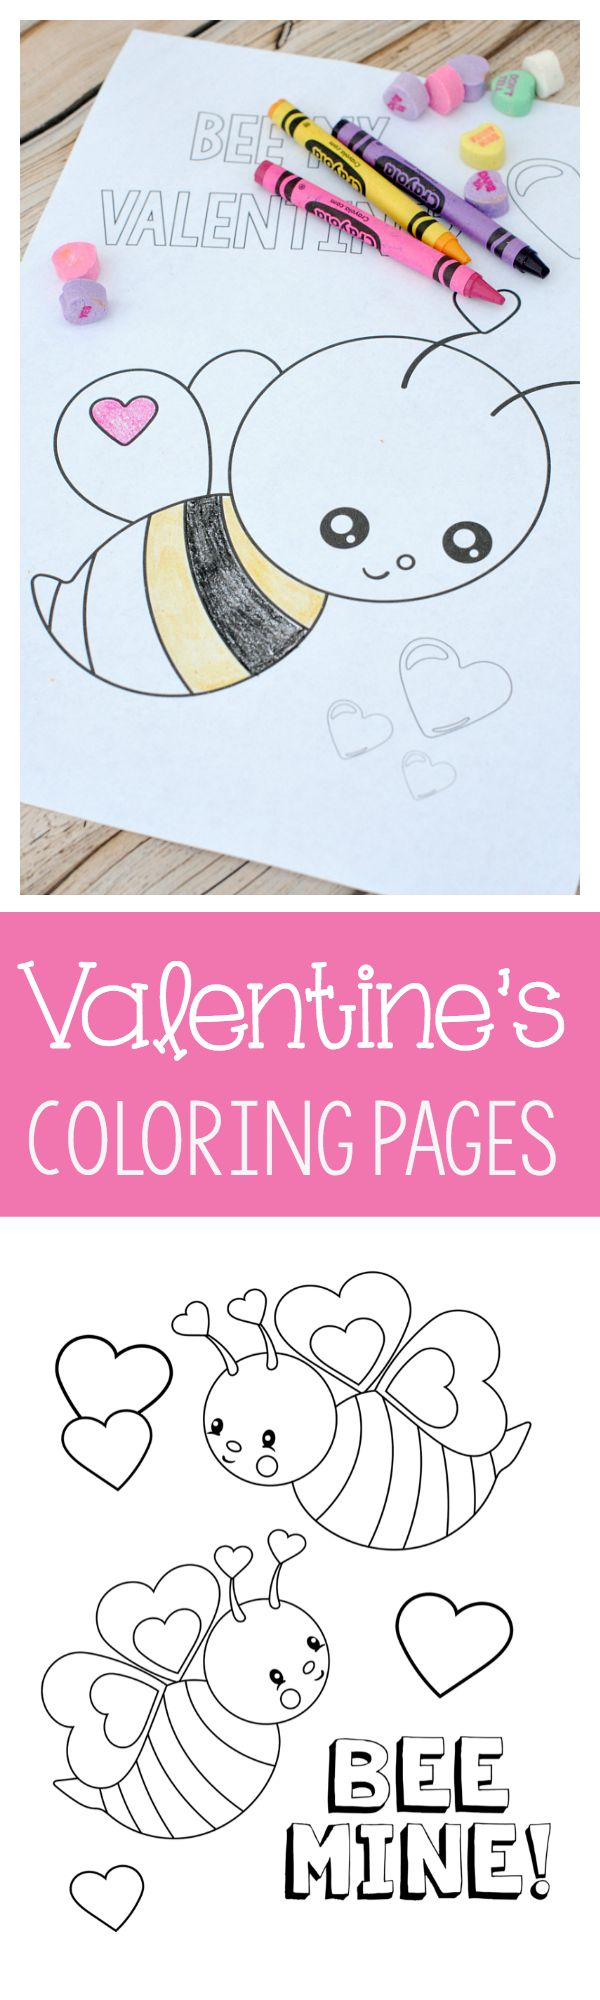 Valentine day butterfly coloring pages - Free Printable Valentine S Coloring Pages